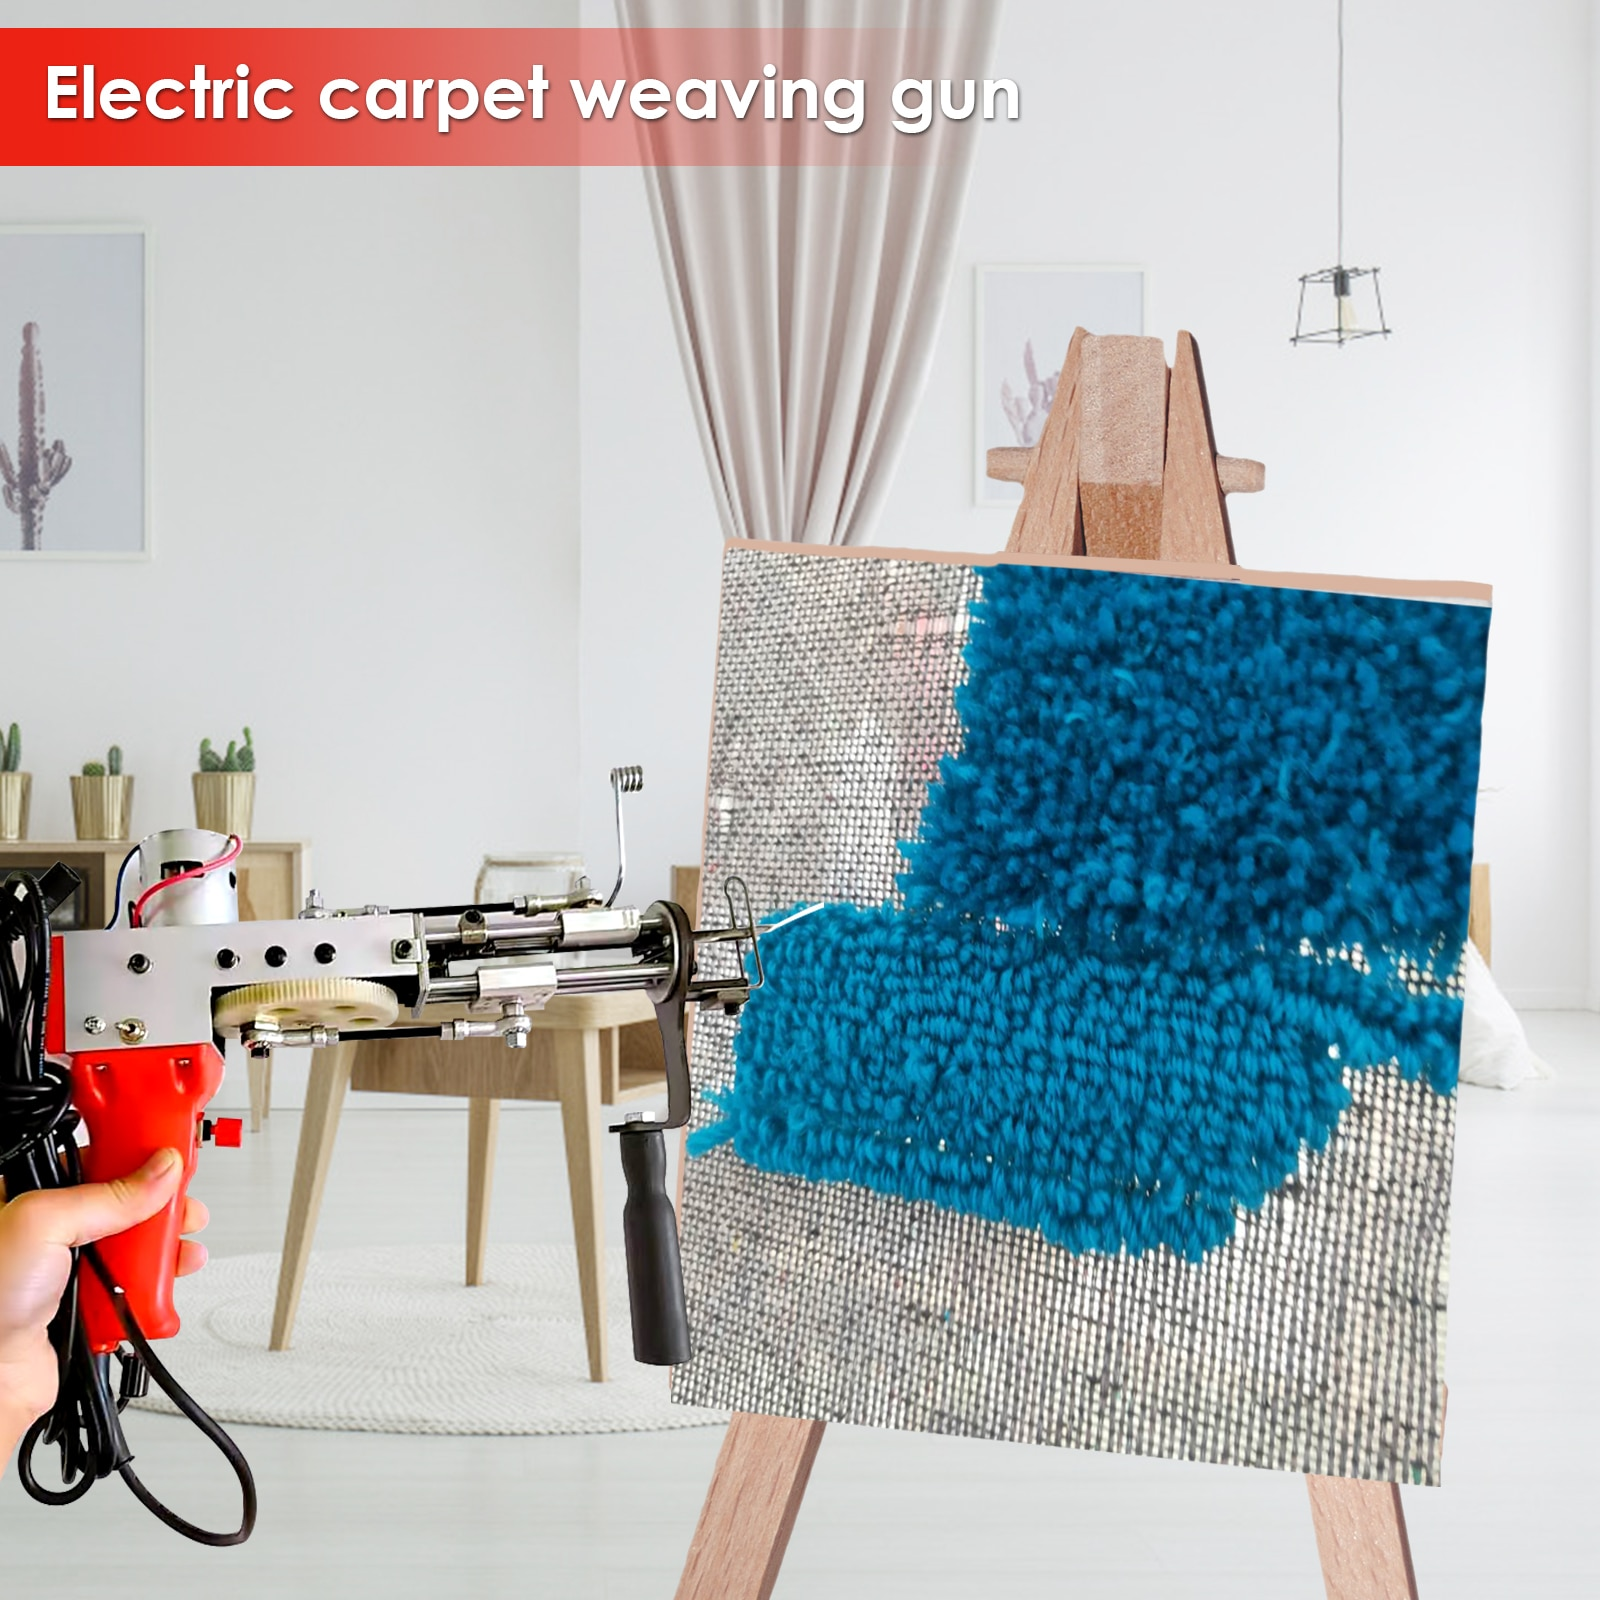 All-aluminum Heavy-duty Red Electric Carpet Tufting Gun Flocking Machine Industrial Embroidery Machine Cut Pile Knitting Machine enlarge